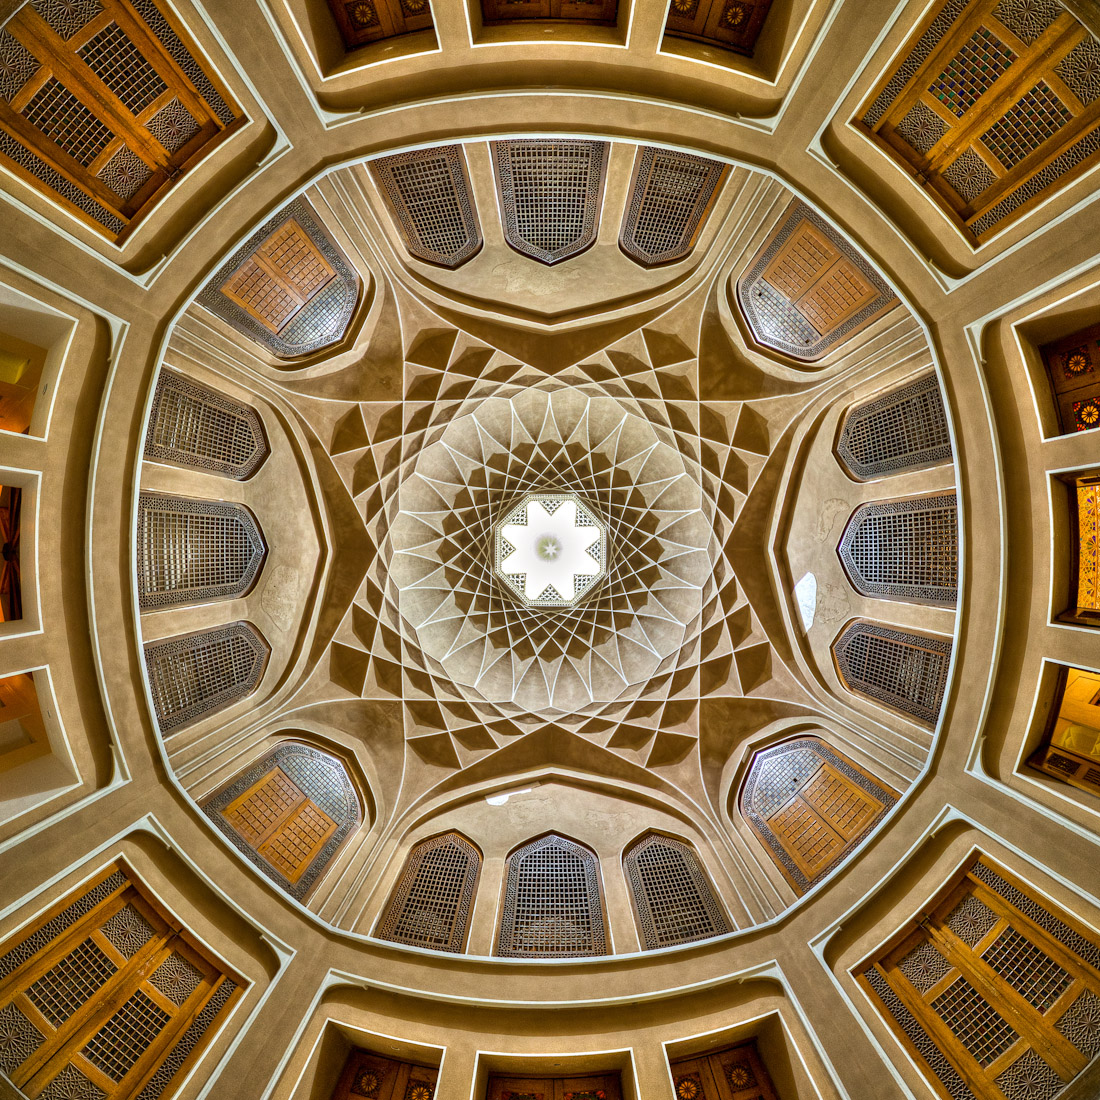 Ceiling of Dolat abad, photo by Mohammad Reza Domiri Ganji